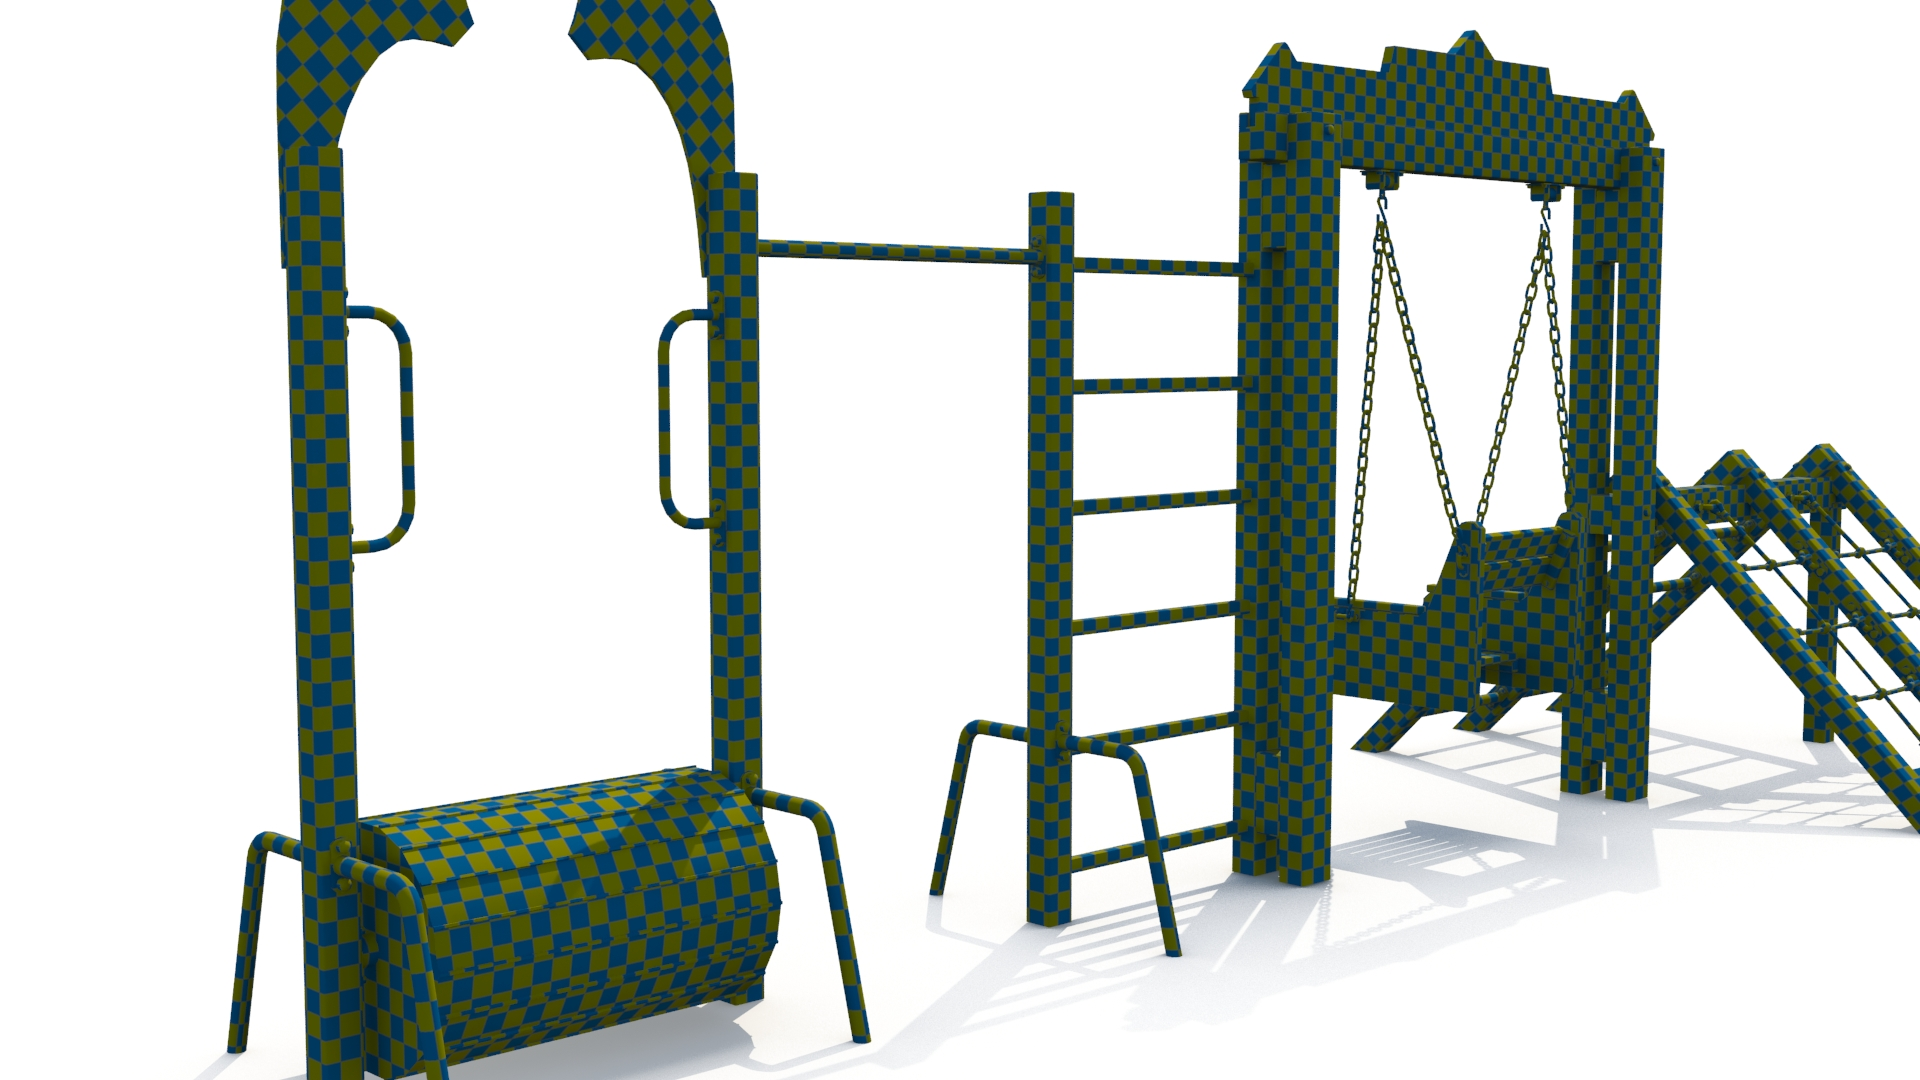 childrens sports complex 3d model 3ds max fbx obj 263439